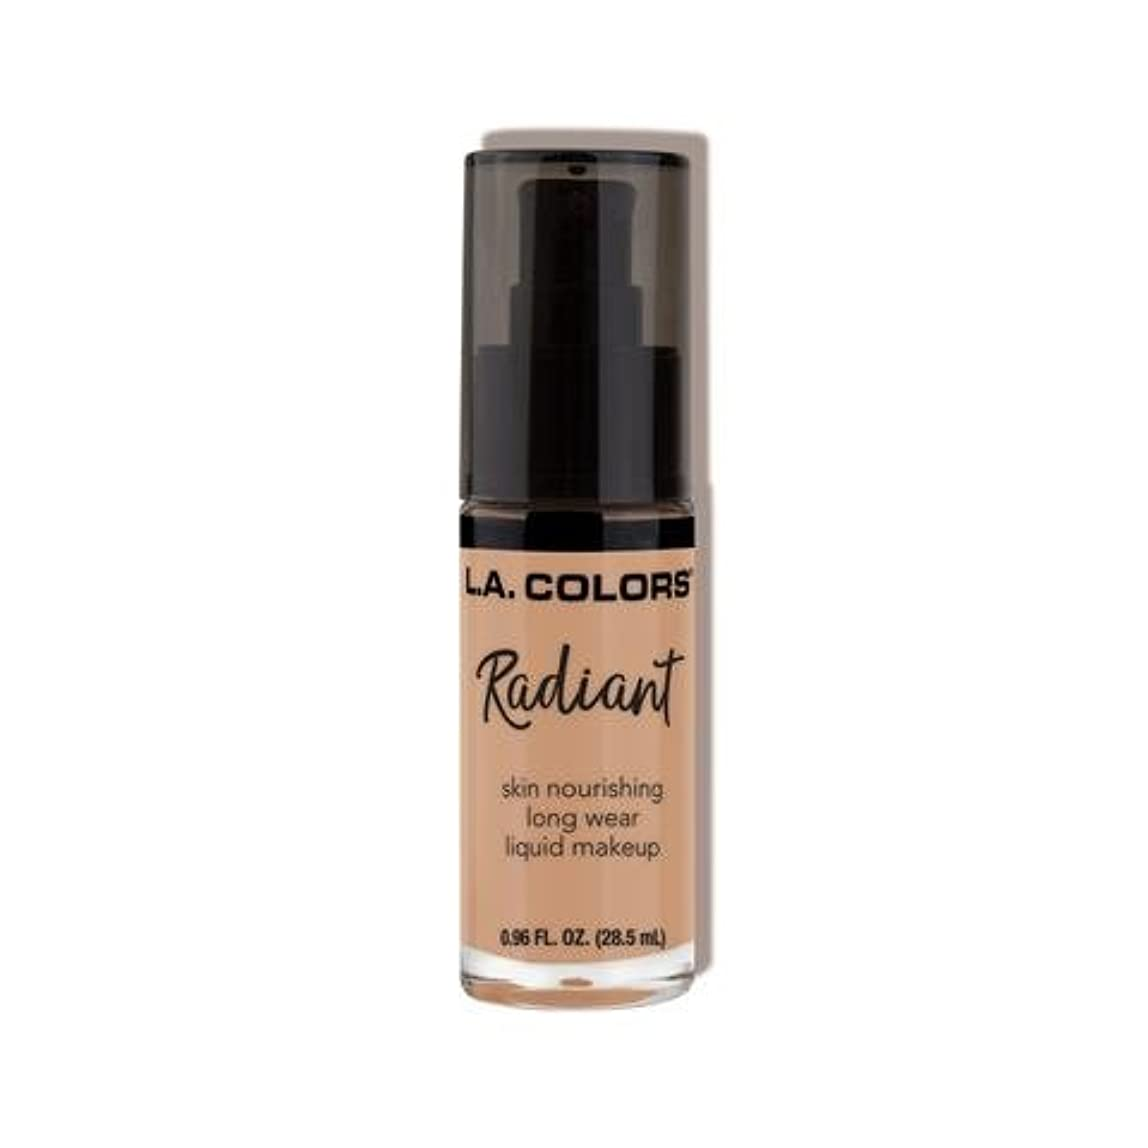 ブラスト作る家具(3 Pack) L.A. COLORS Radiant Liquid Makeup - Fair (並行輸入品)